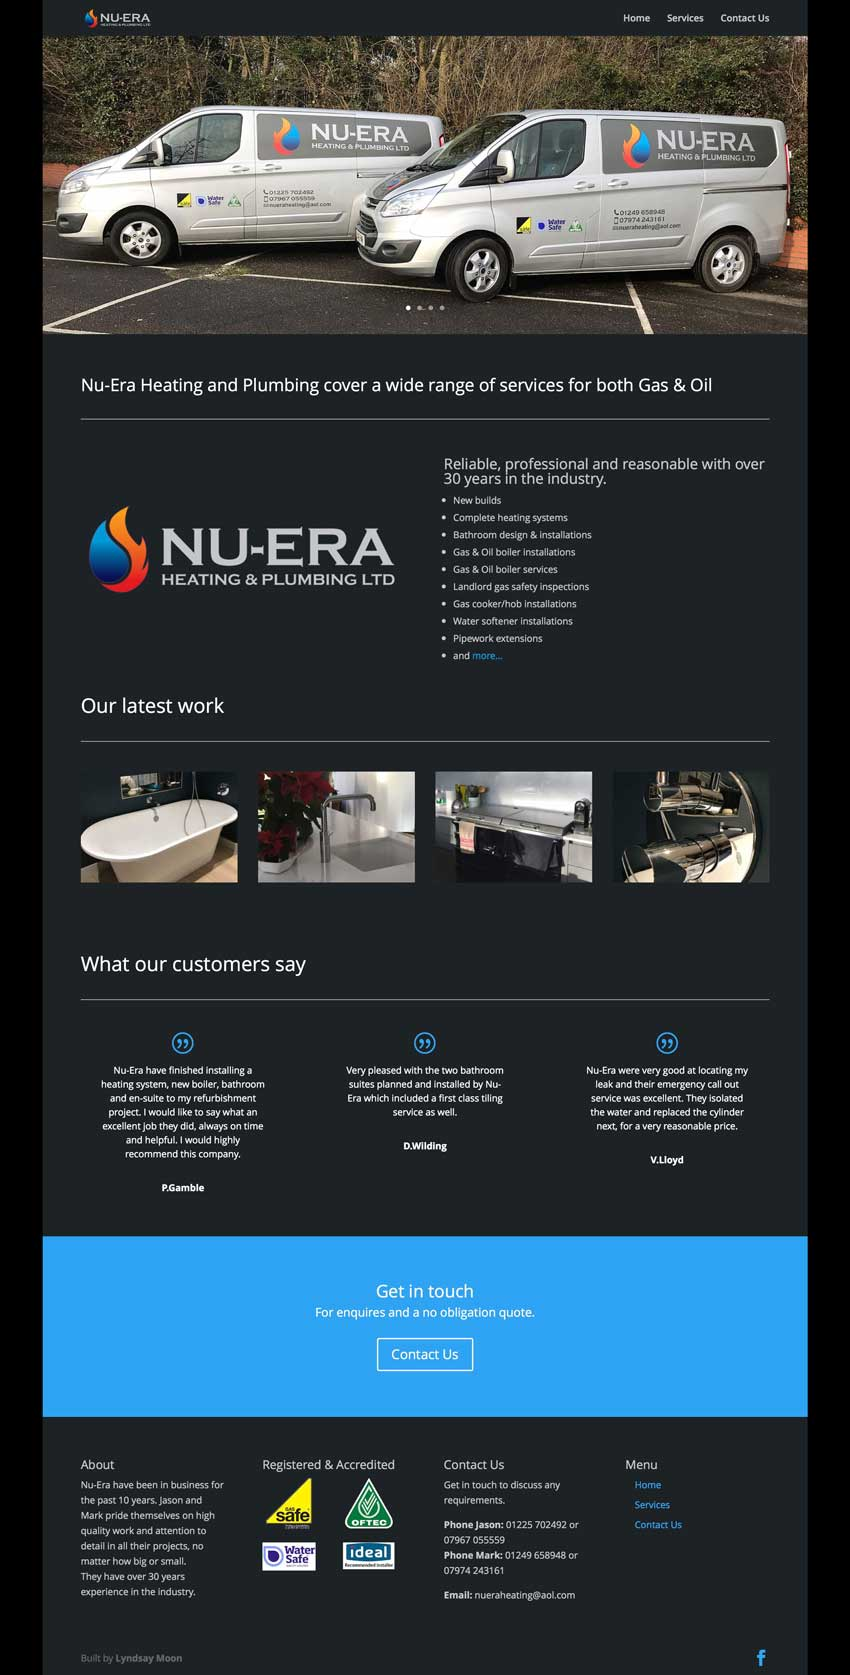 Plumbing and Heating Website Design screenshot